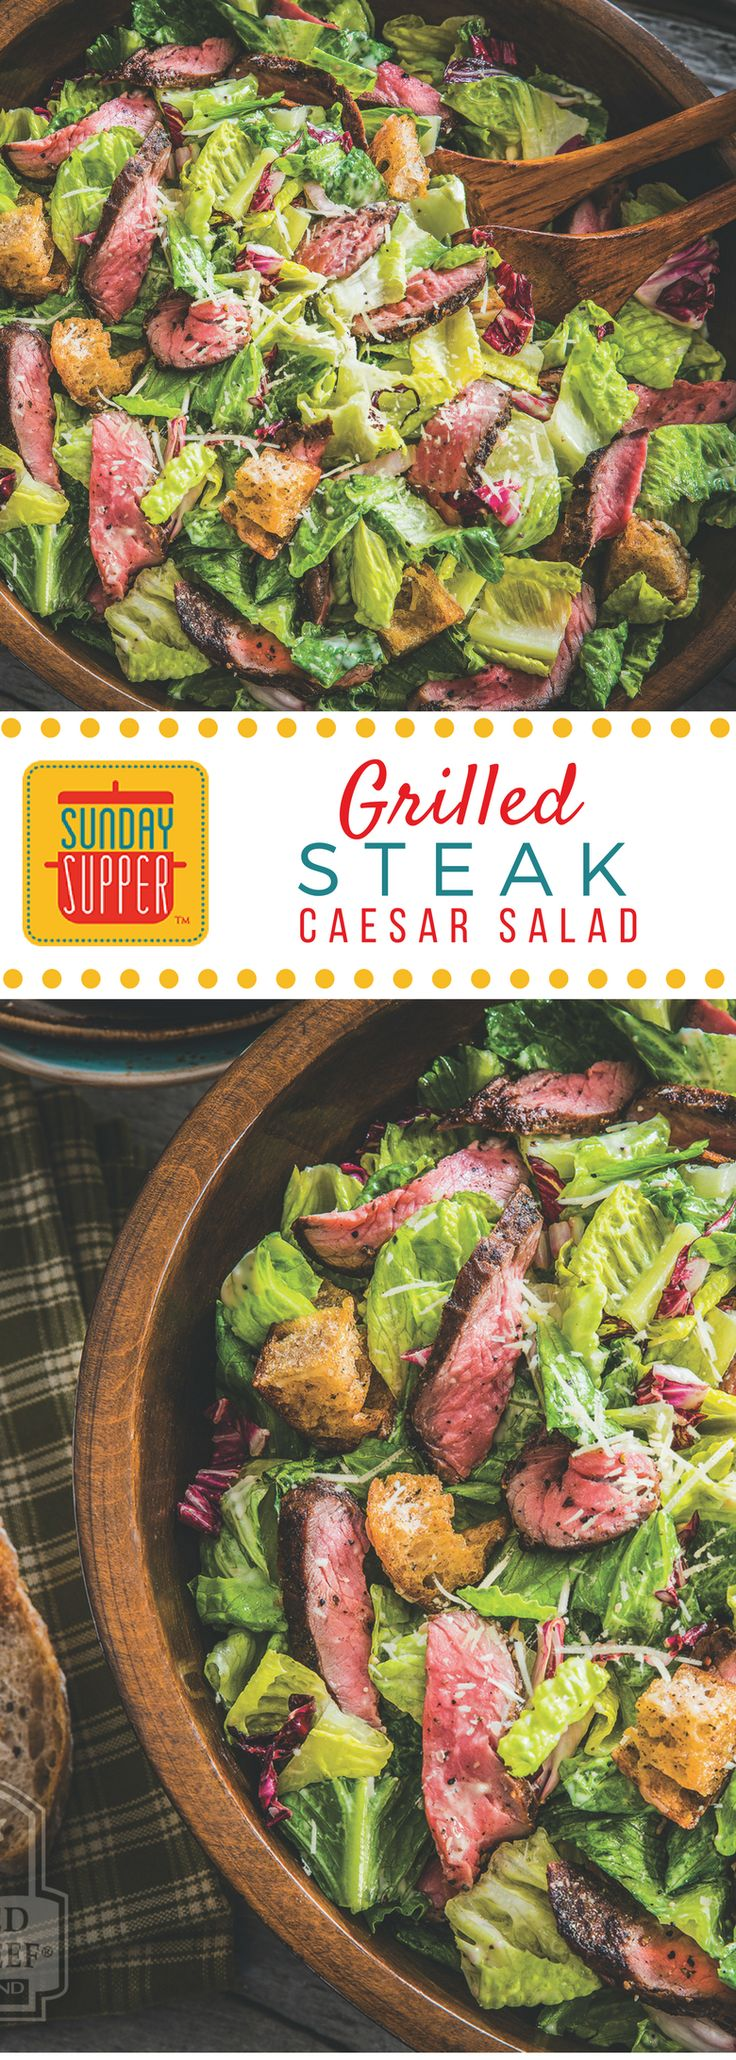 We love Caesar salad as a side dish, but add some steak and your Grilled Steak Caesar Salad becomes a main course, healthy and filling! #SundaySupper